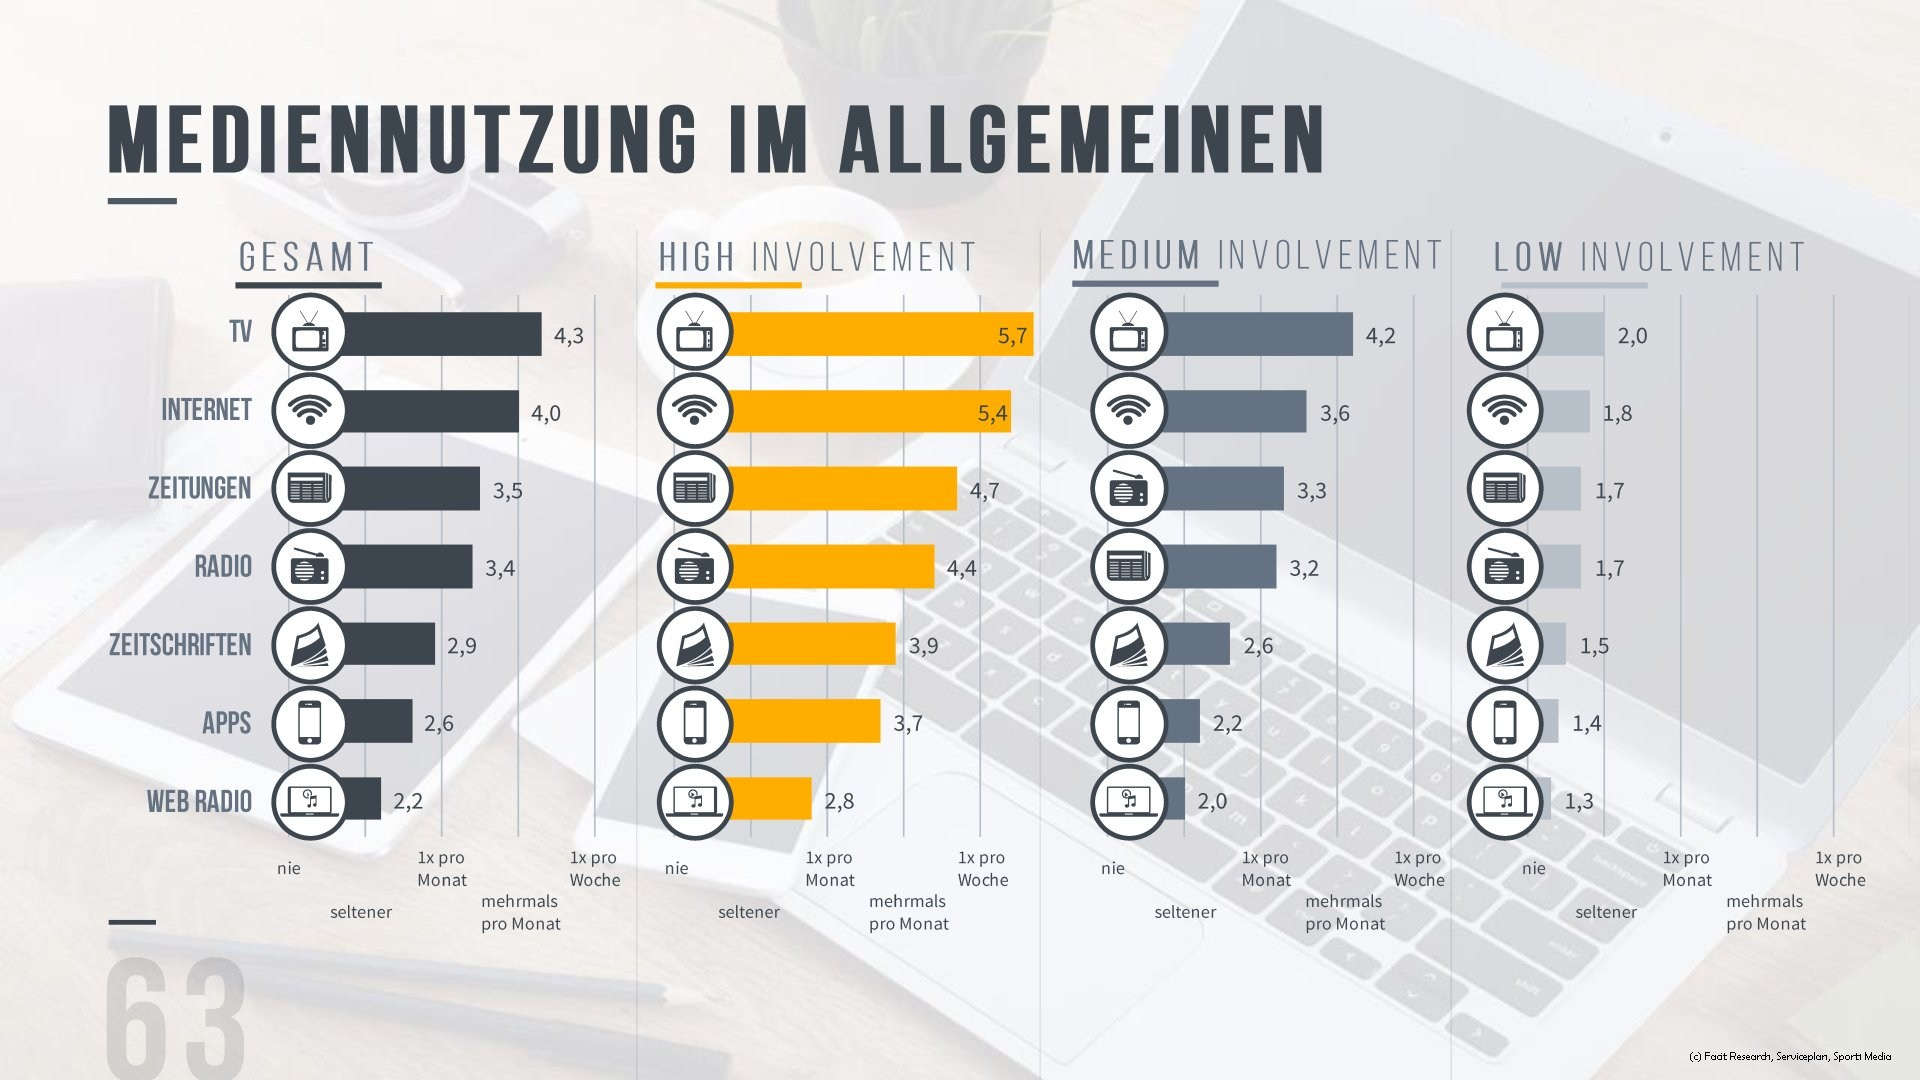 grafik facit research mediennutzung bundesliga fans